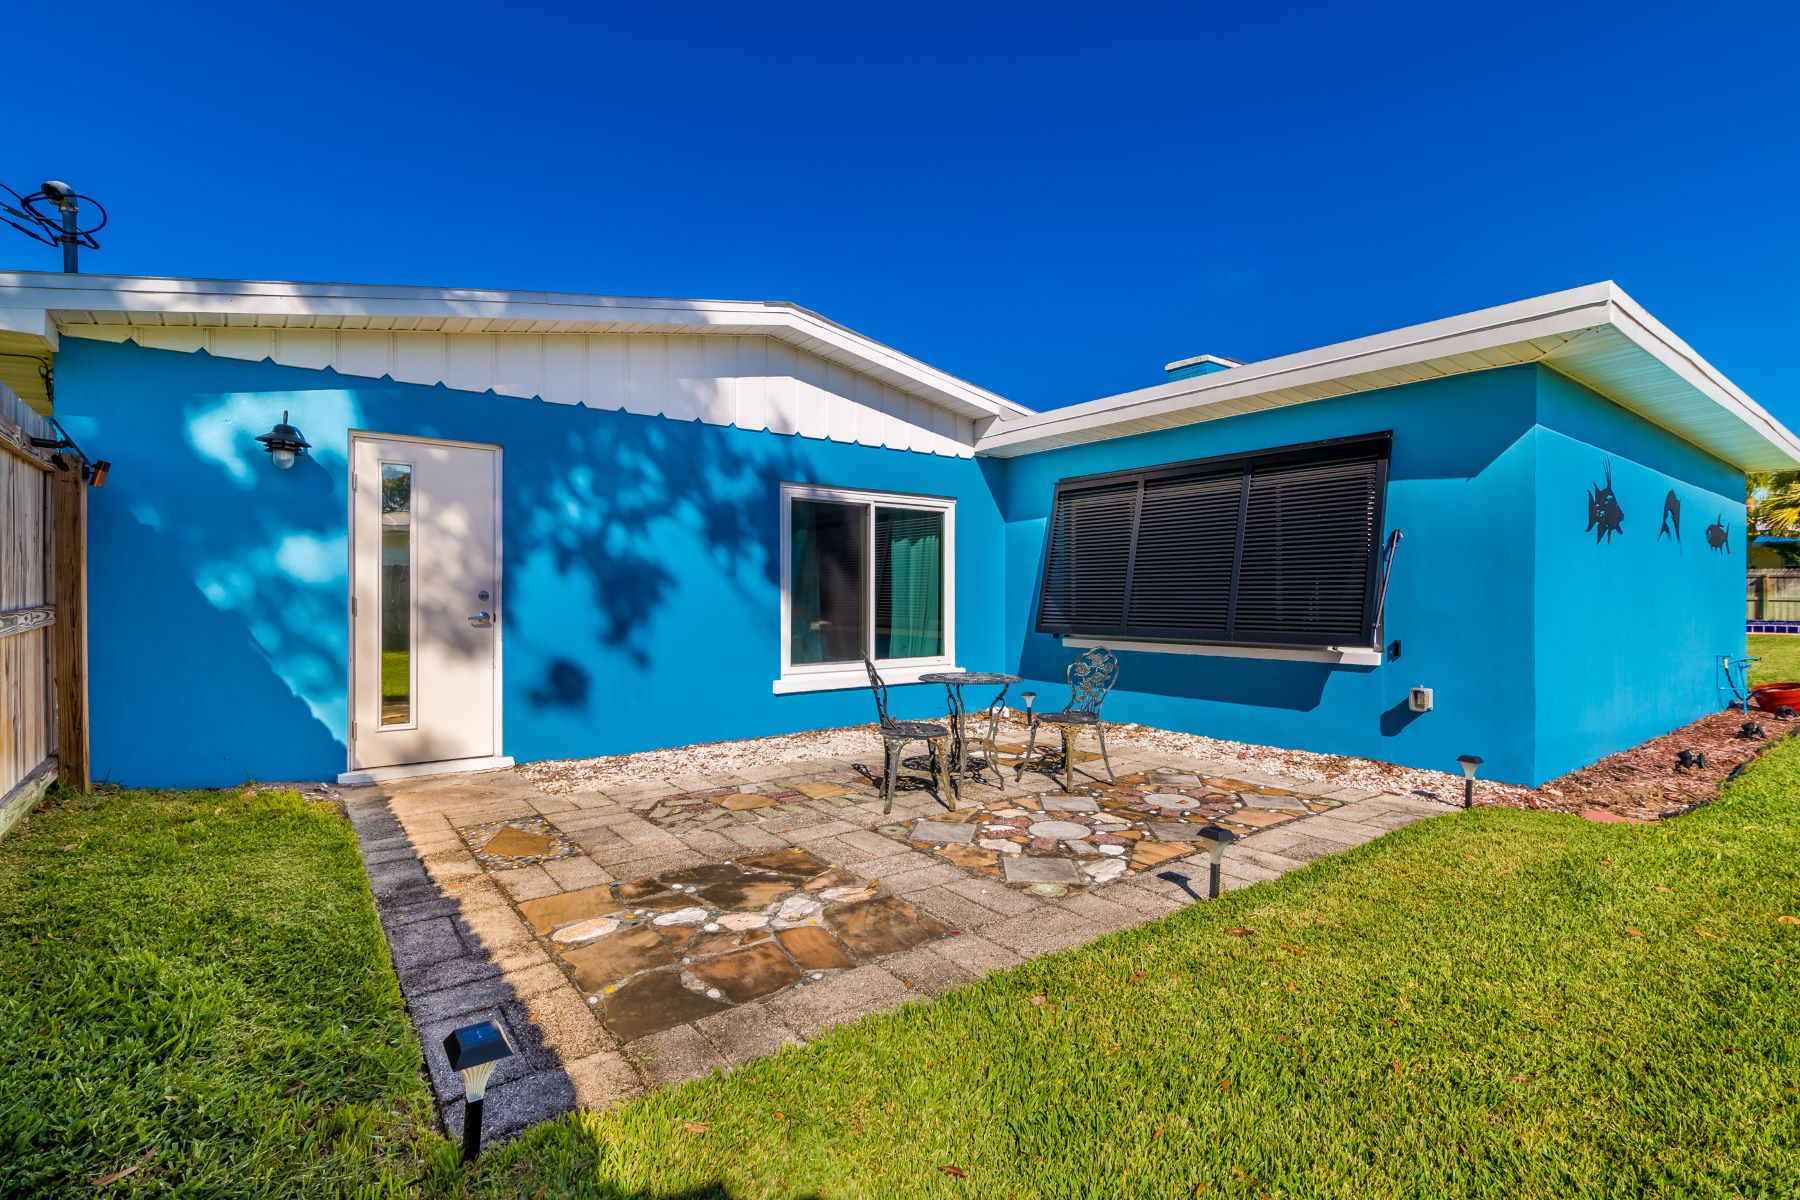 Additional photo for property listing at 237 Tampa Ave 237 Tampa Ave. Indialantic, Florida 32903 United States